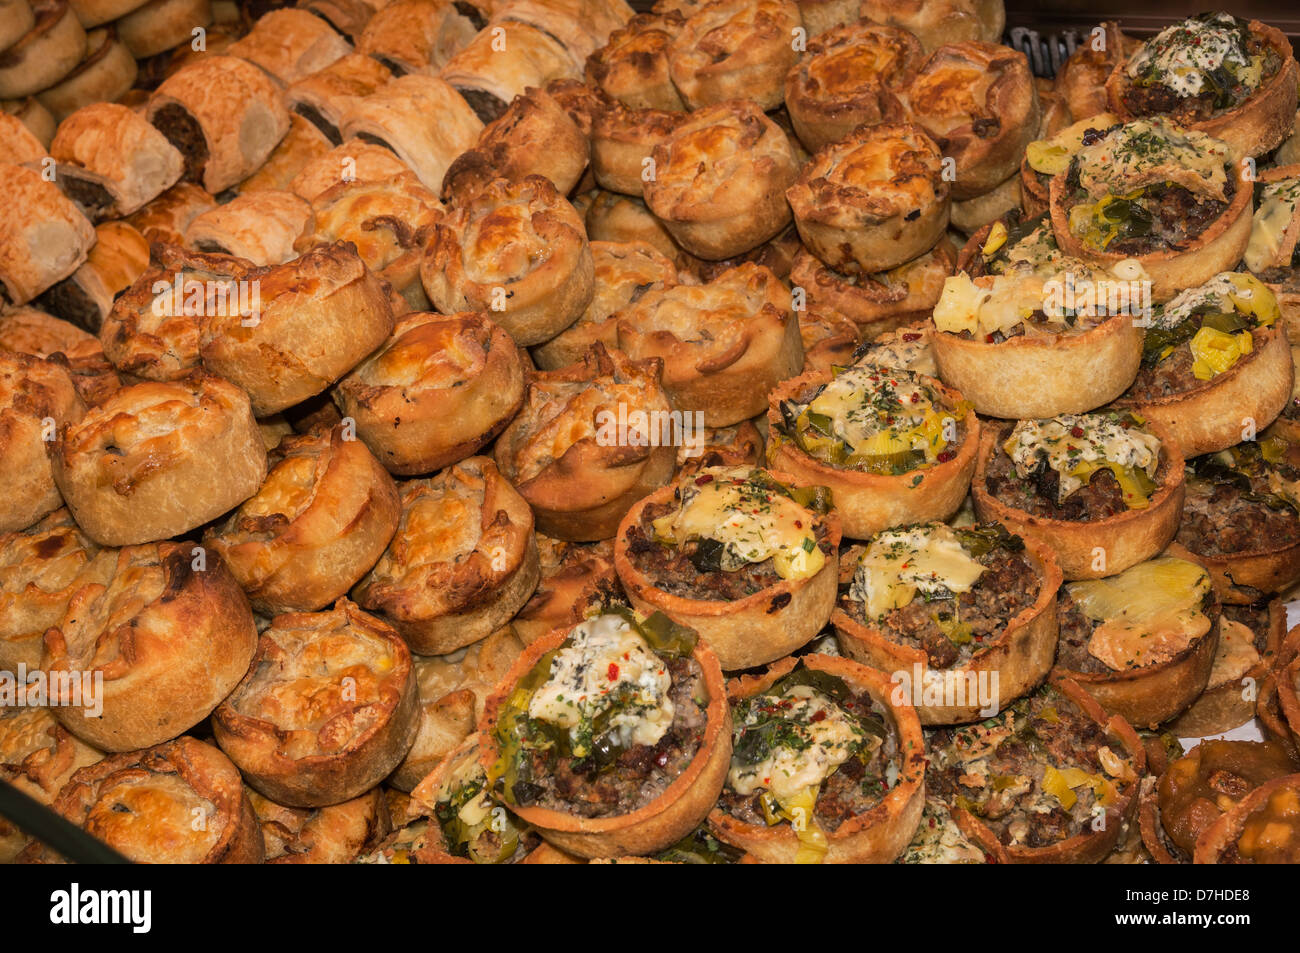 Pies on sale at the Festival of Food and drink, Leyburn - Stock Image